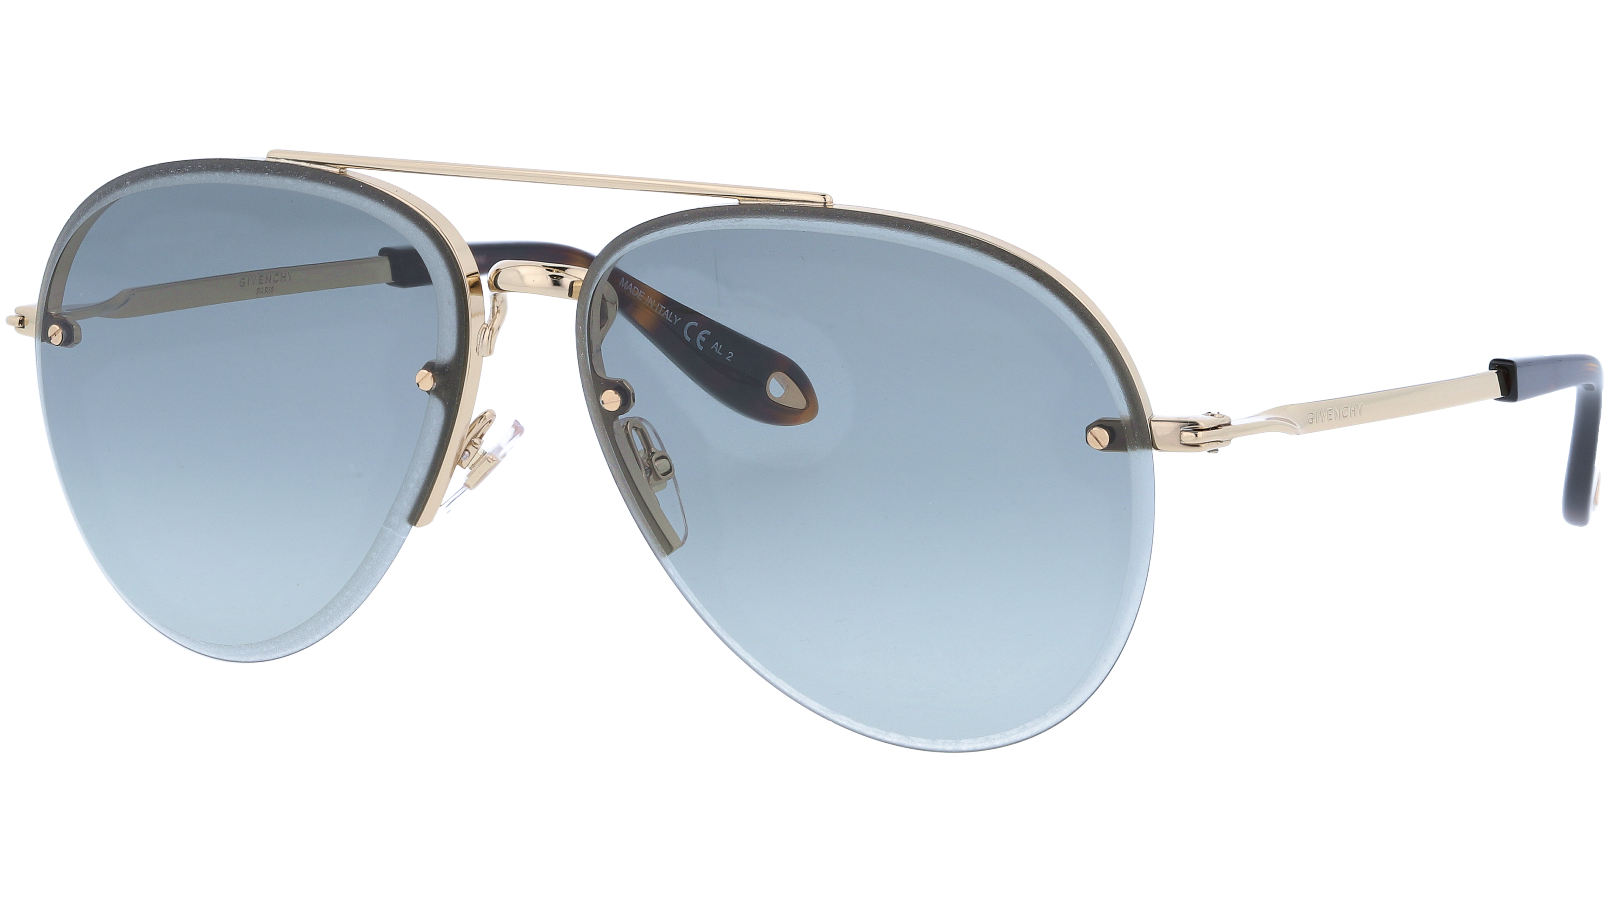 GIVENCHY GV7075S J5G90 62 GOLD Sunglasses